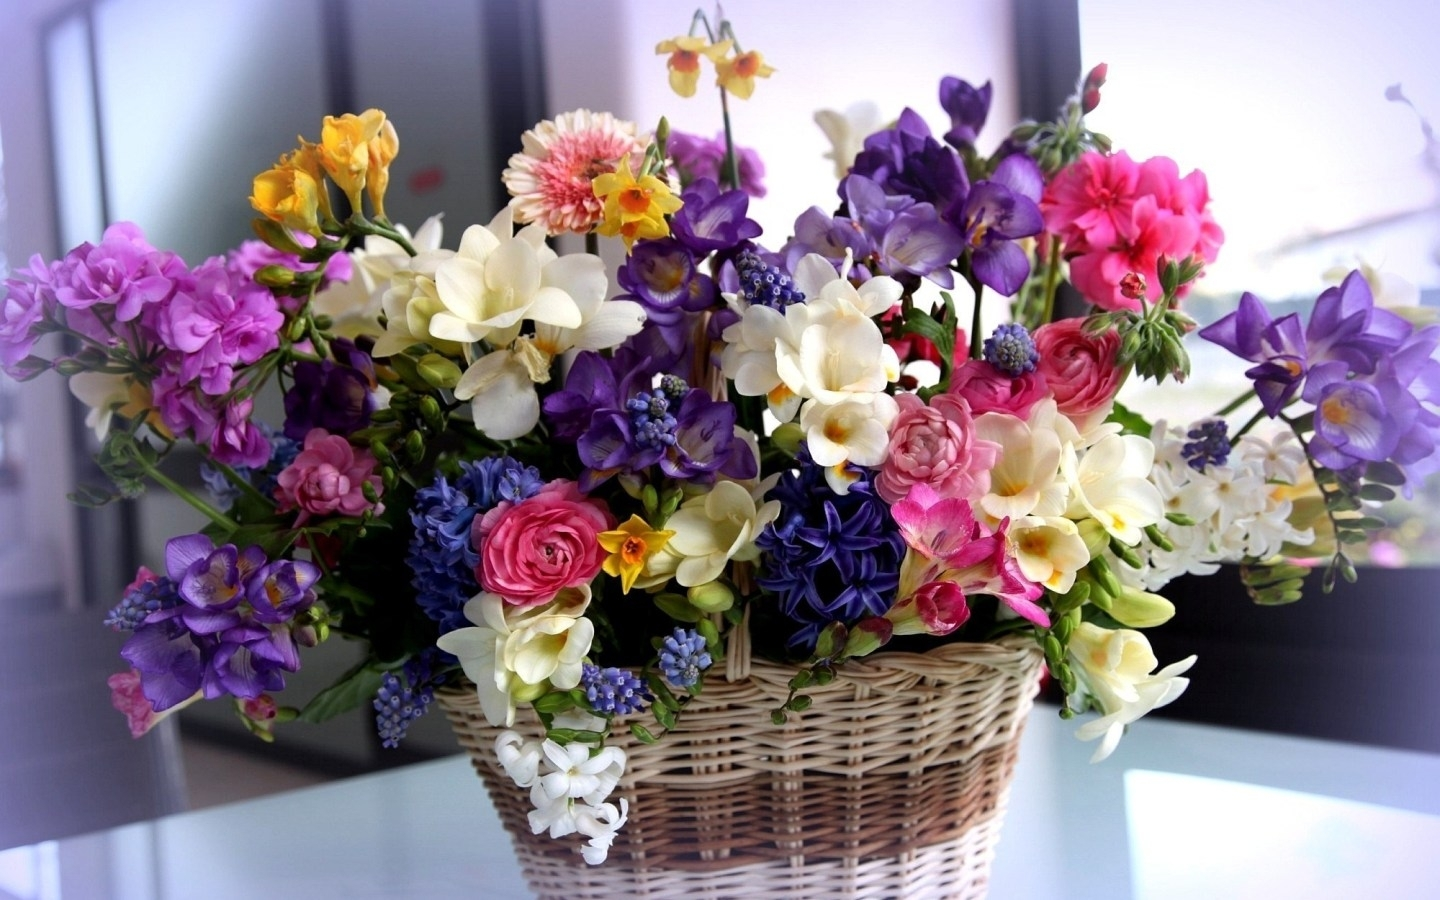 10 Top Beautiful Flower Bouquets Pictures Full Hd 19201080 For Pc